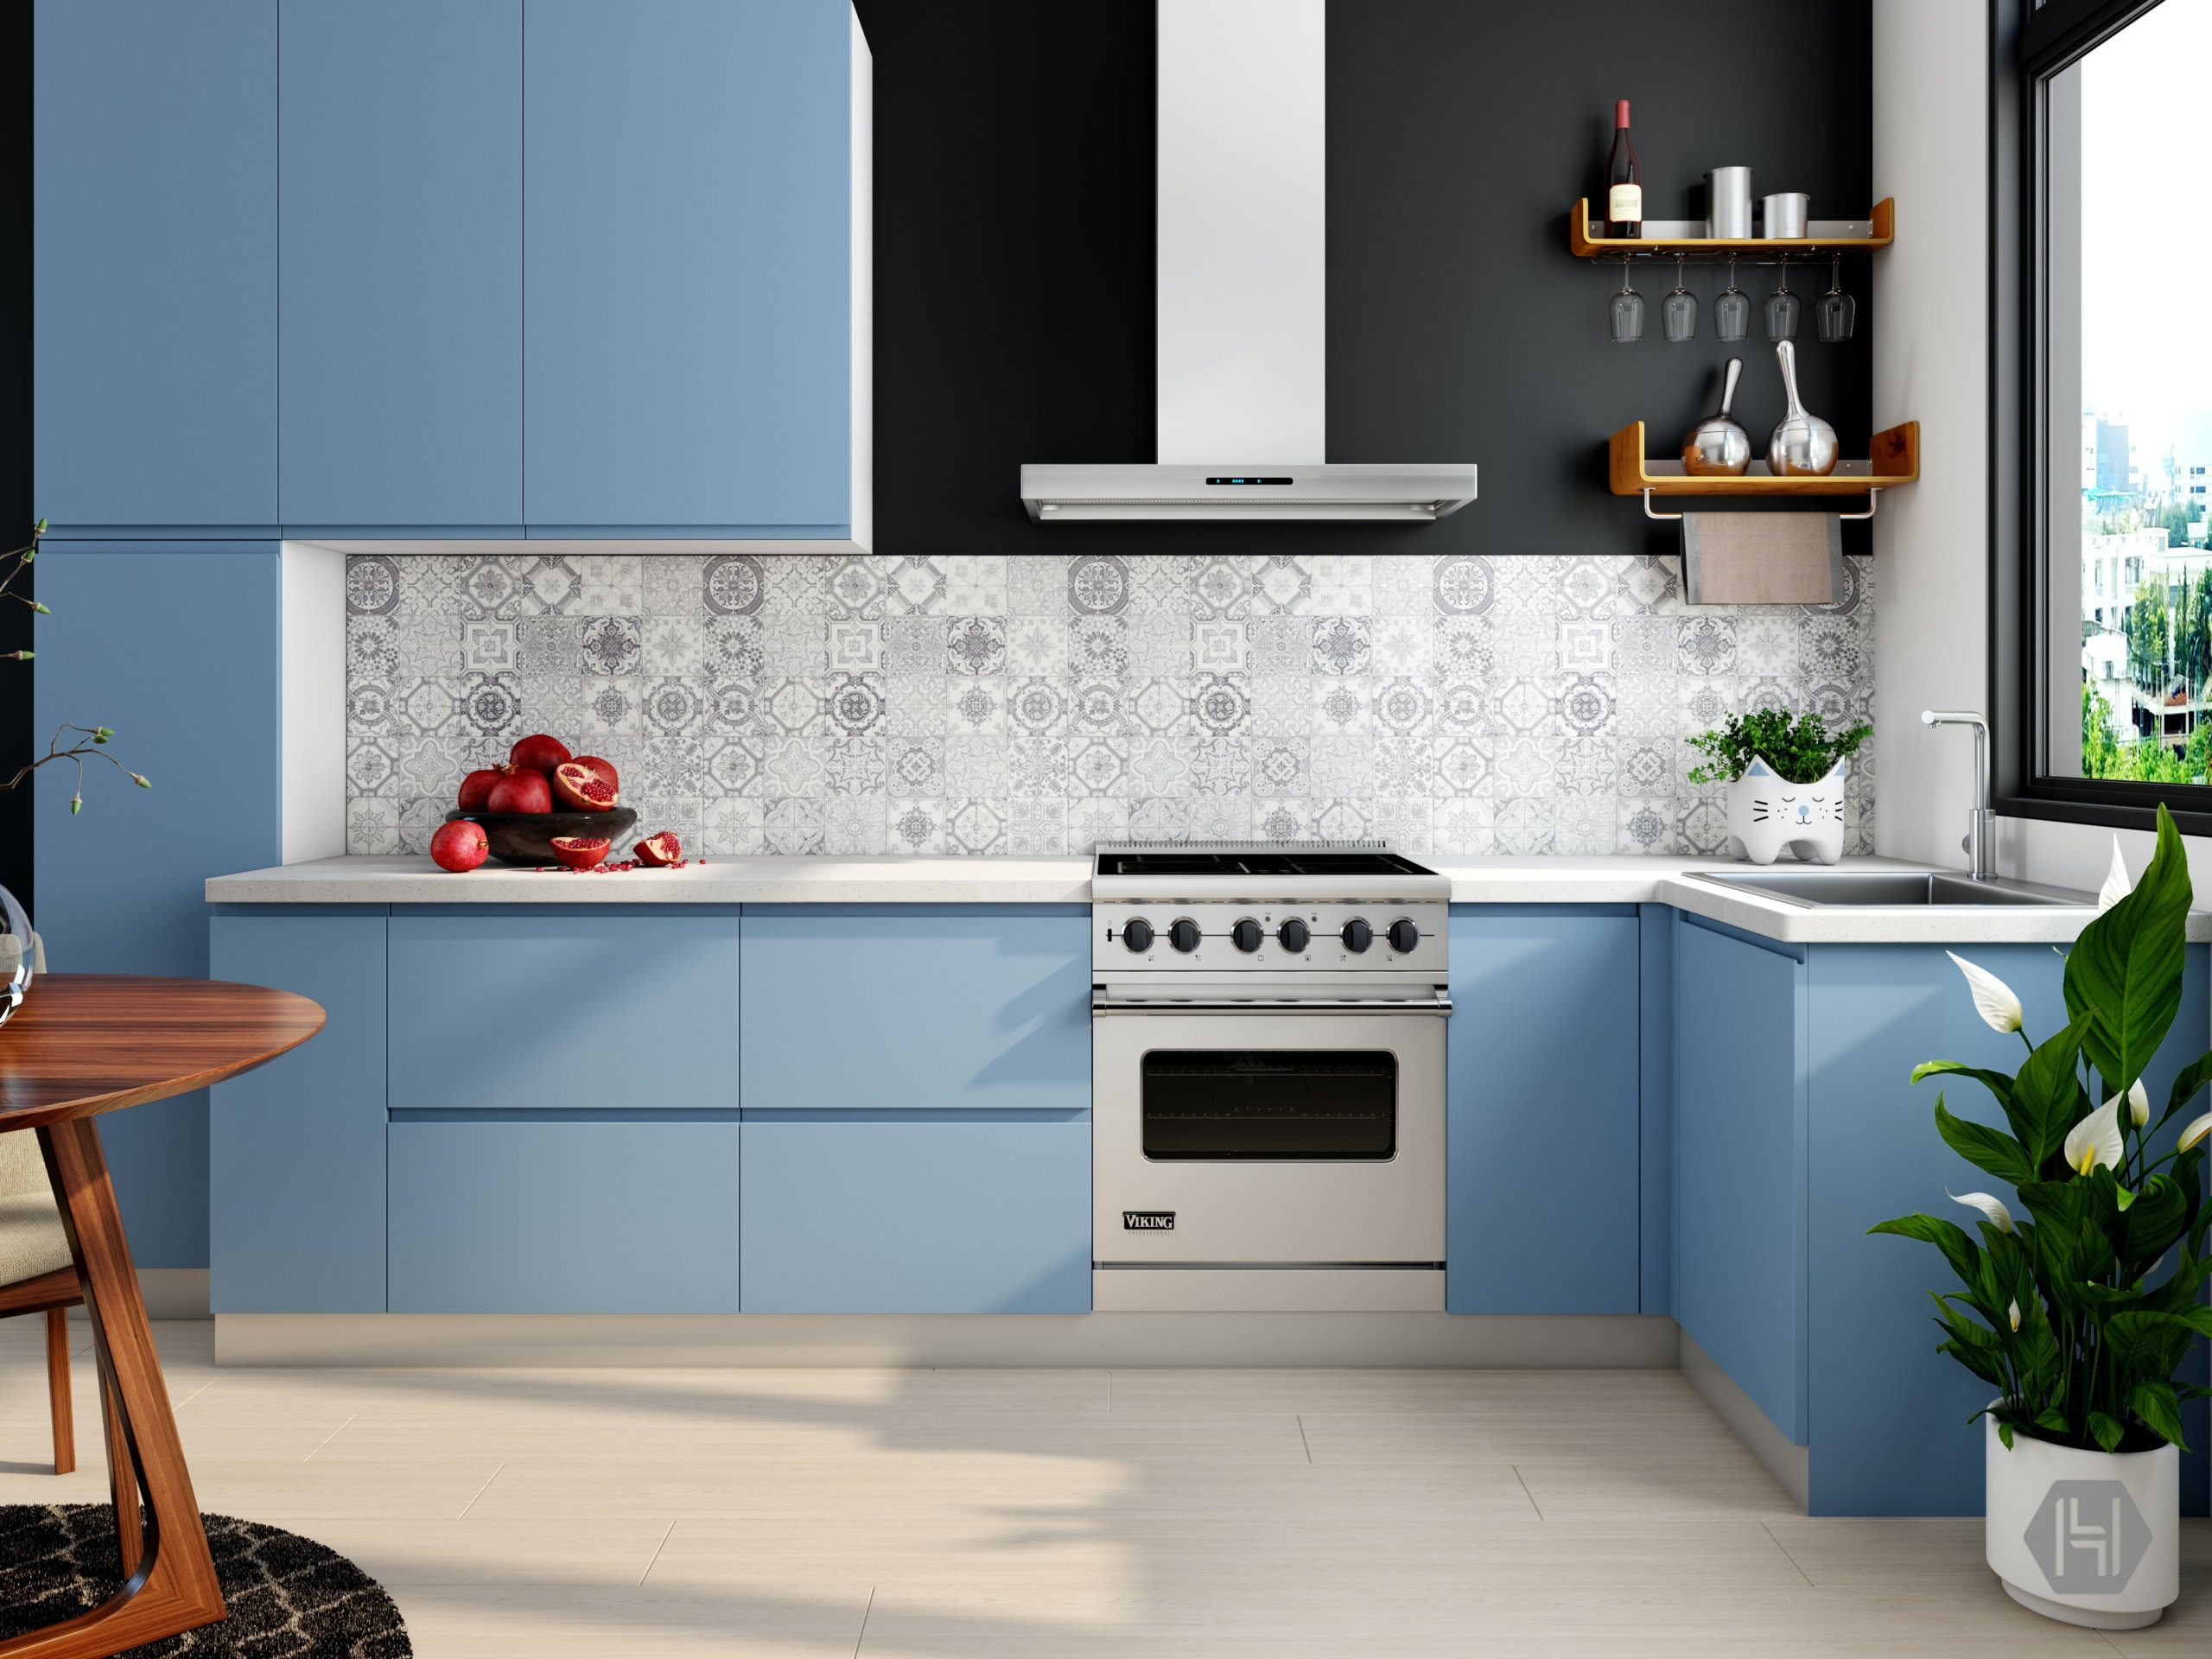 Kitchen interior with blue cabinets and tiled wall